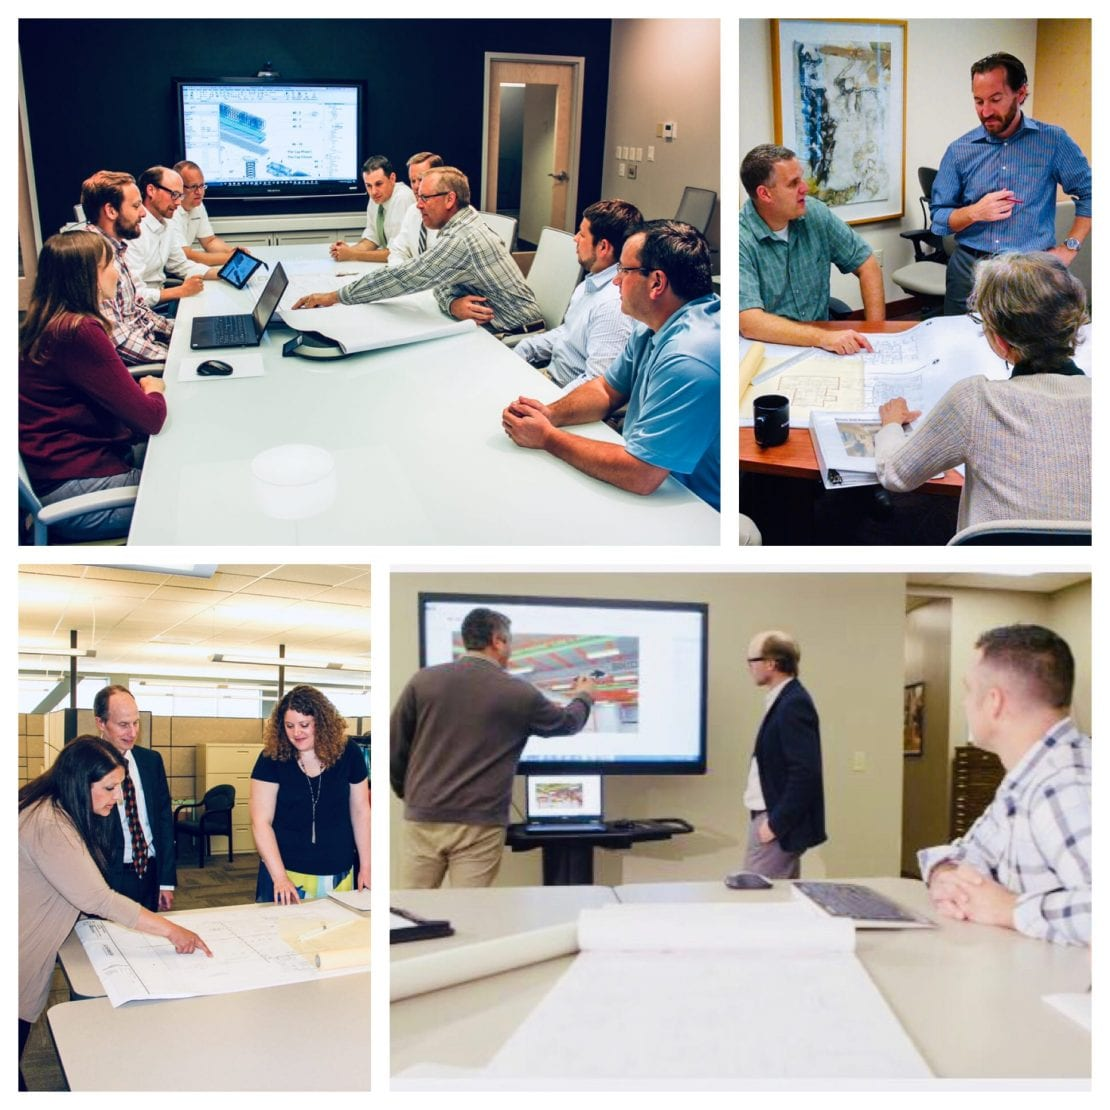 Schemmer Collaboration Meetings | Design with Purpose. Build with Confidence.